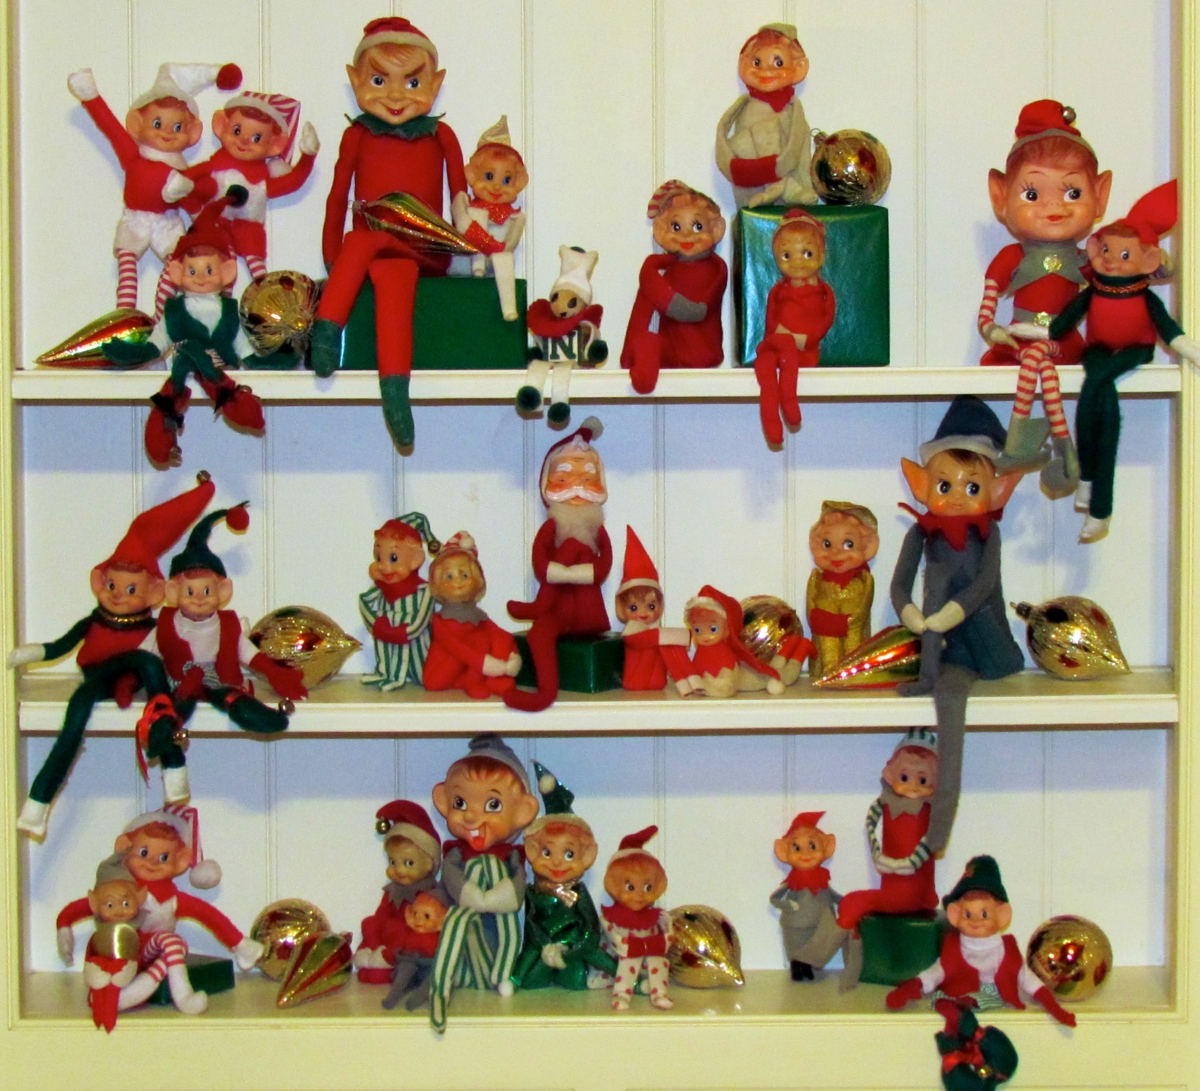 Kitschy Christmas Elves: a Holiday Tradition